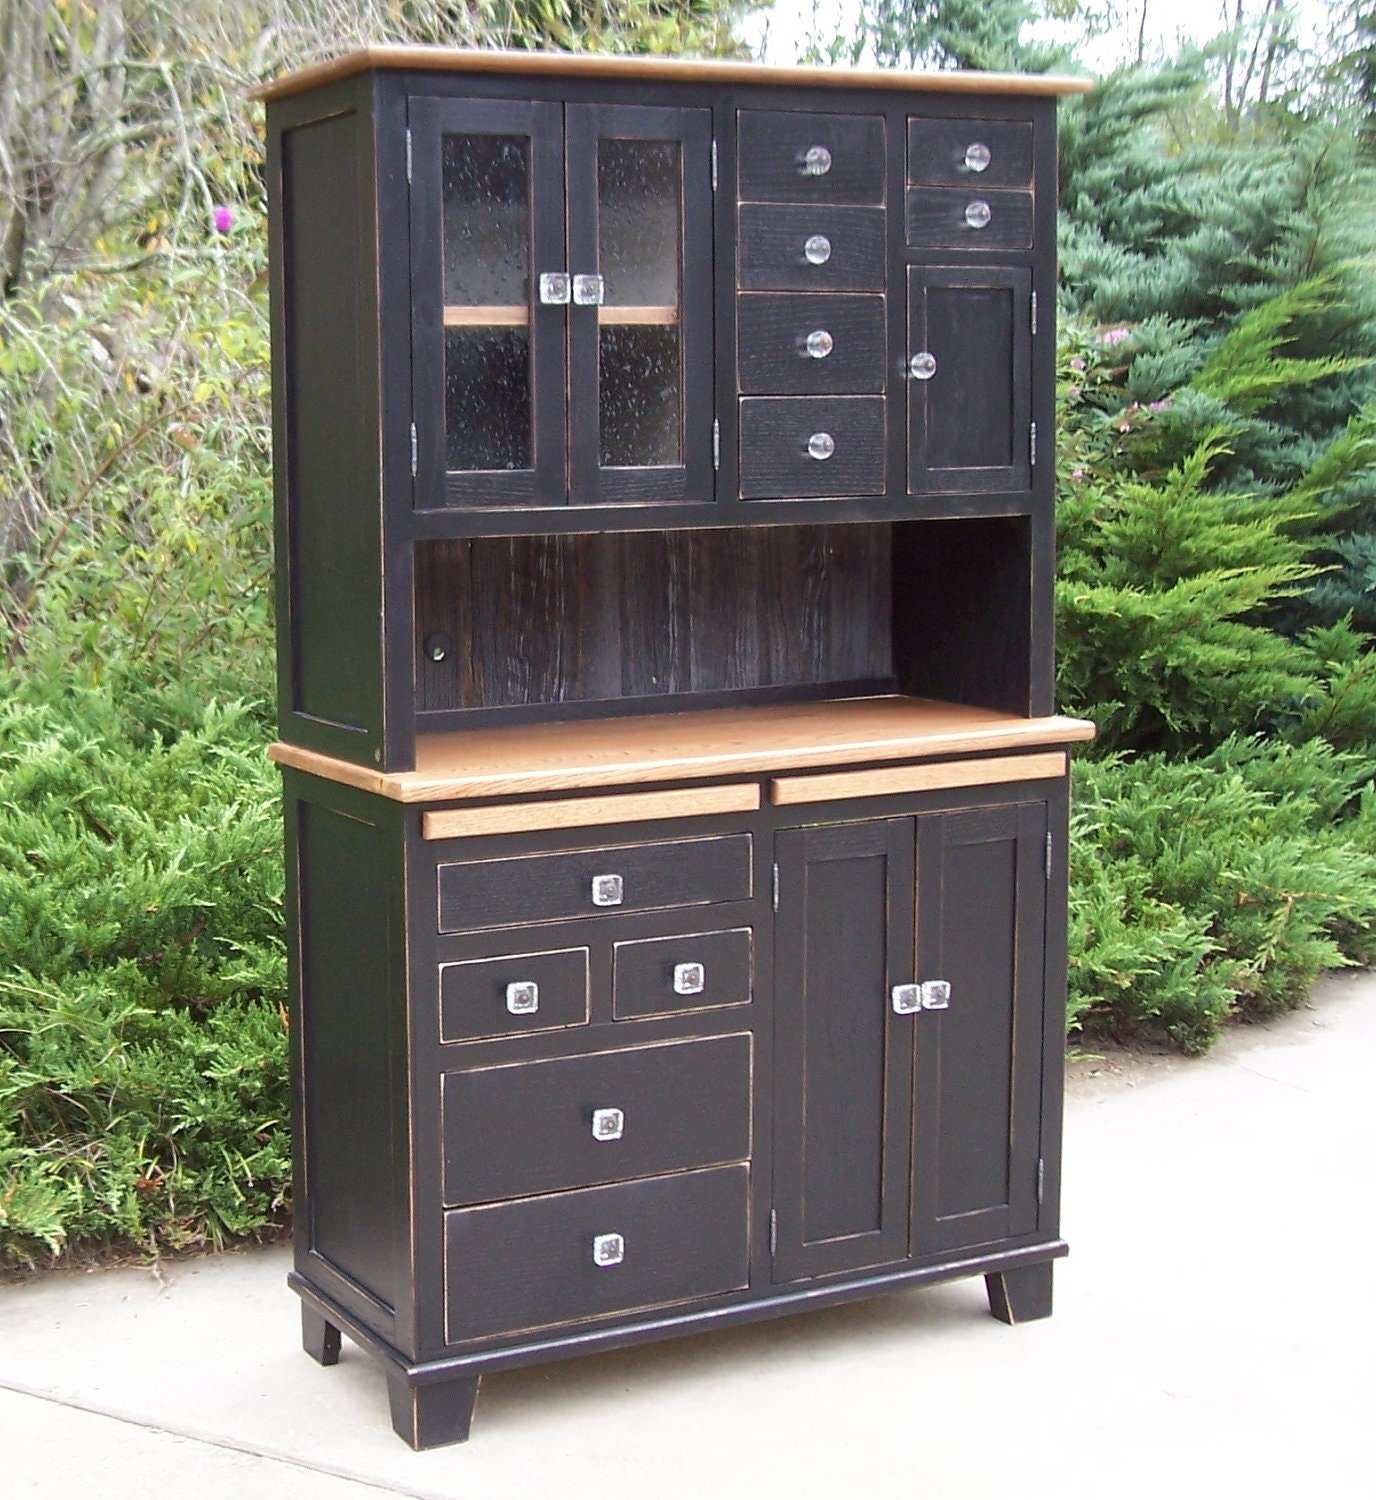 Custom Hoosier Cabinet By NaturesKnotsFurnitur On Etsy